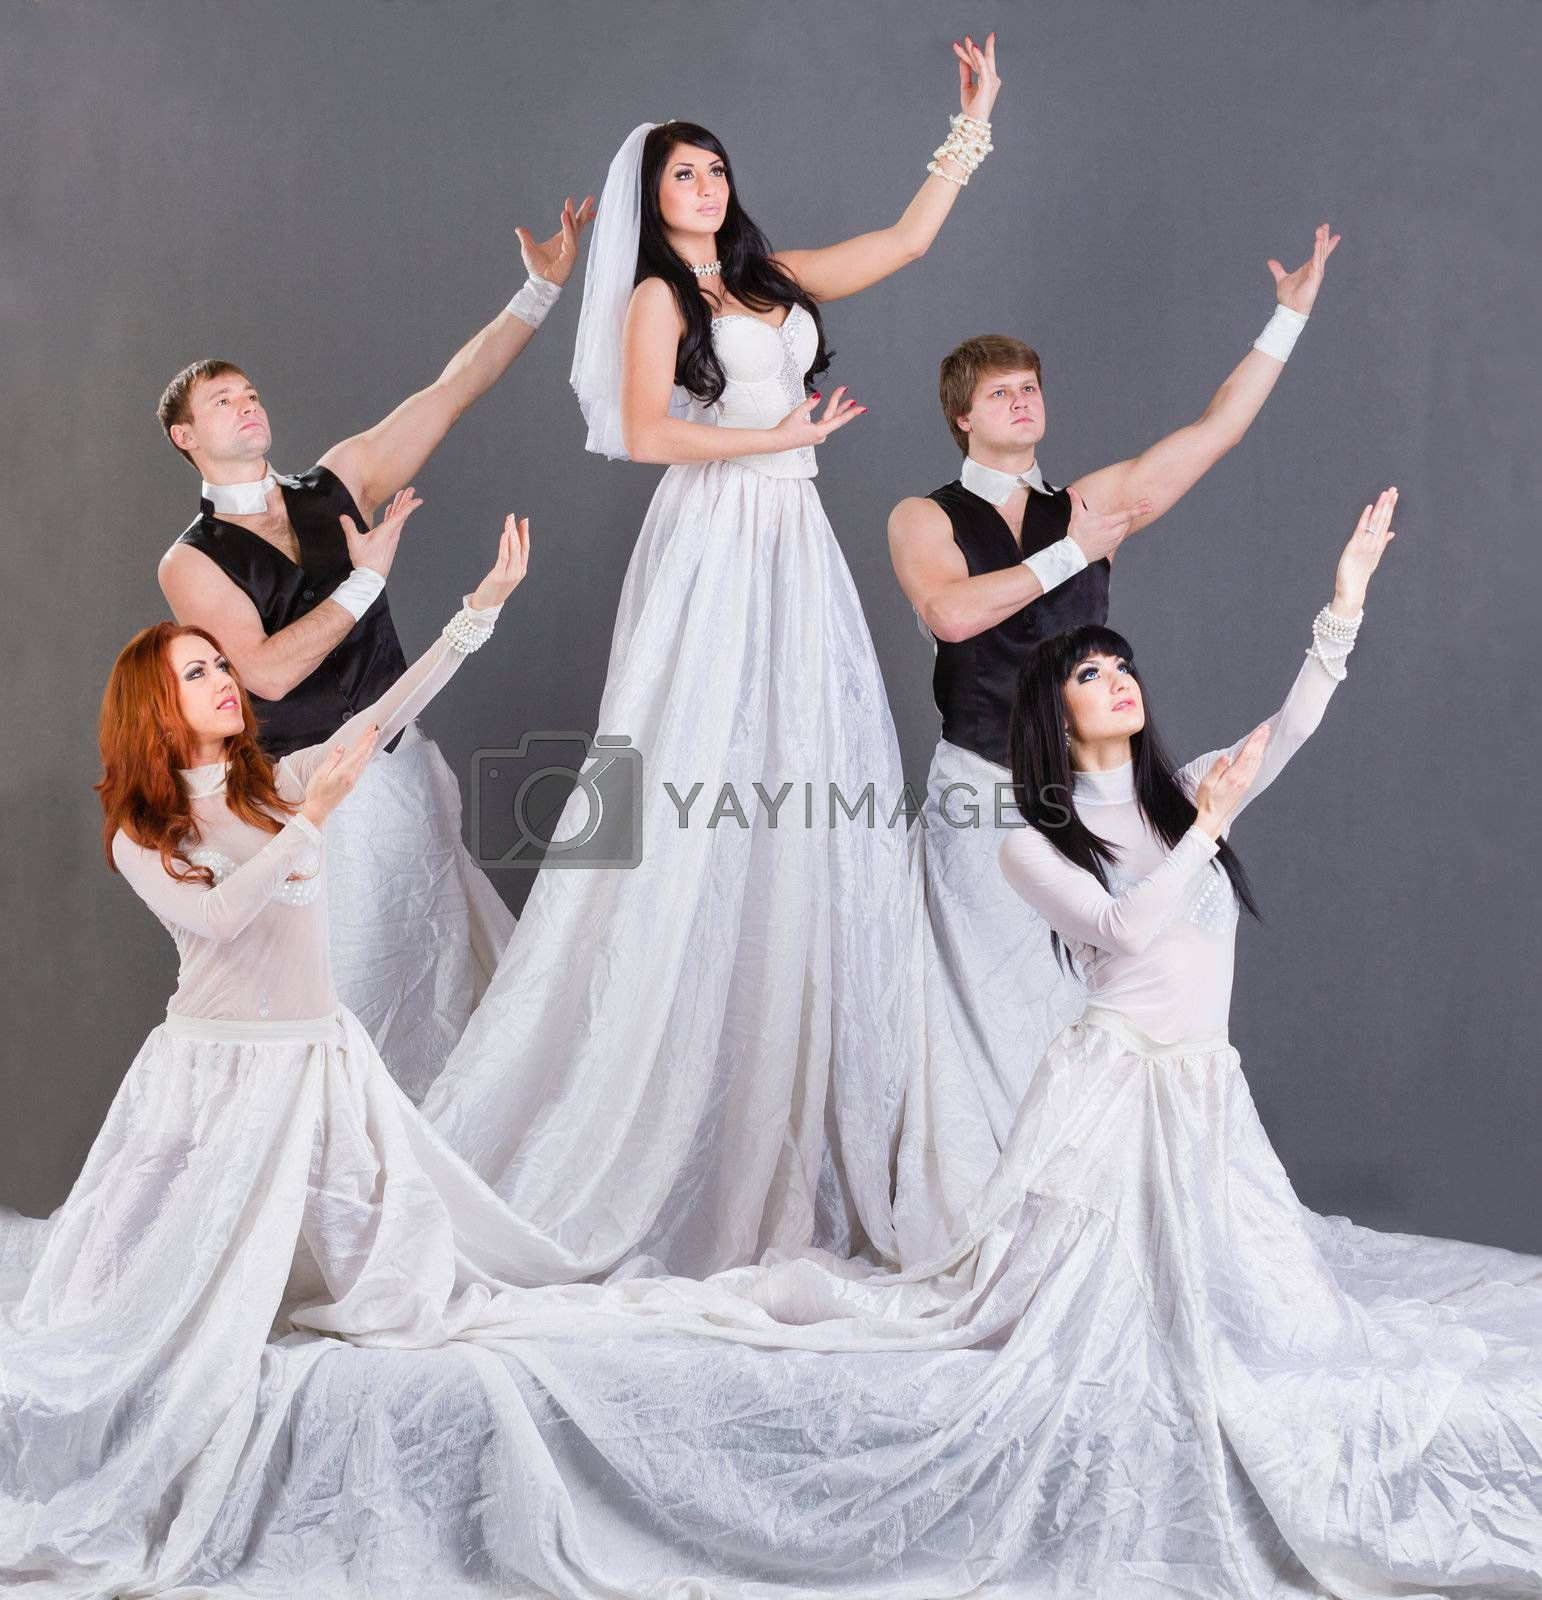 Actors in the wedding dress dancing. On a gray background in full length.